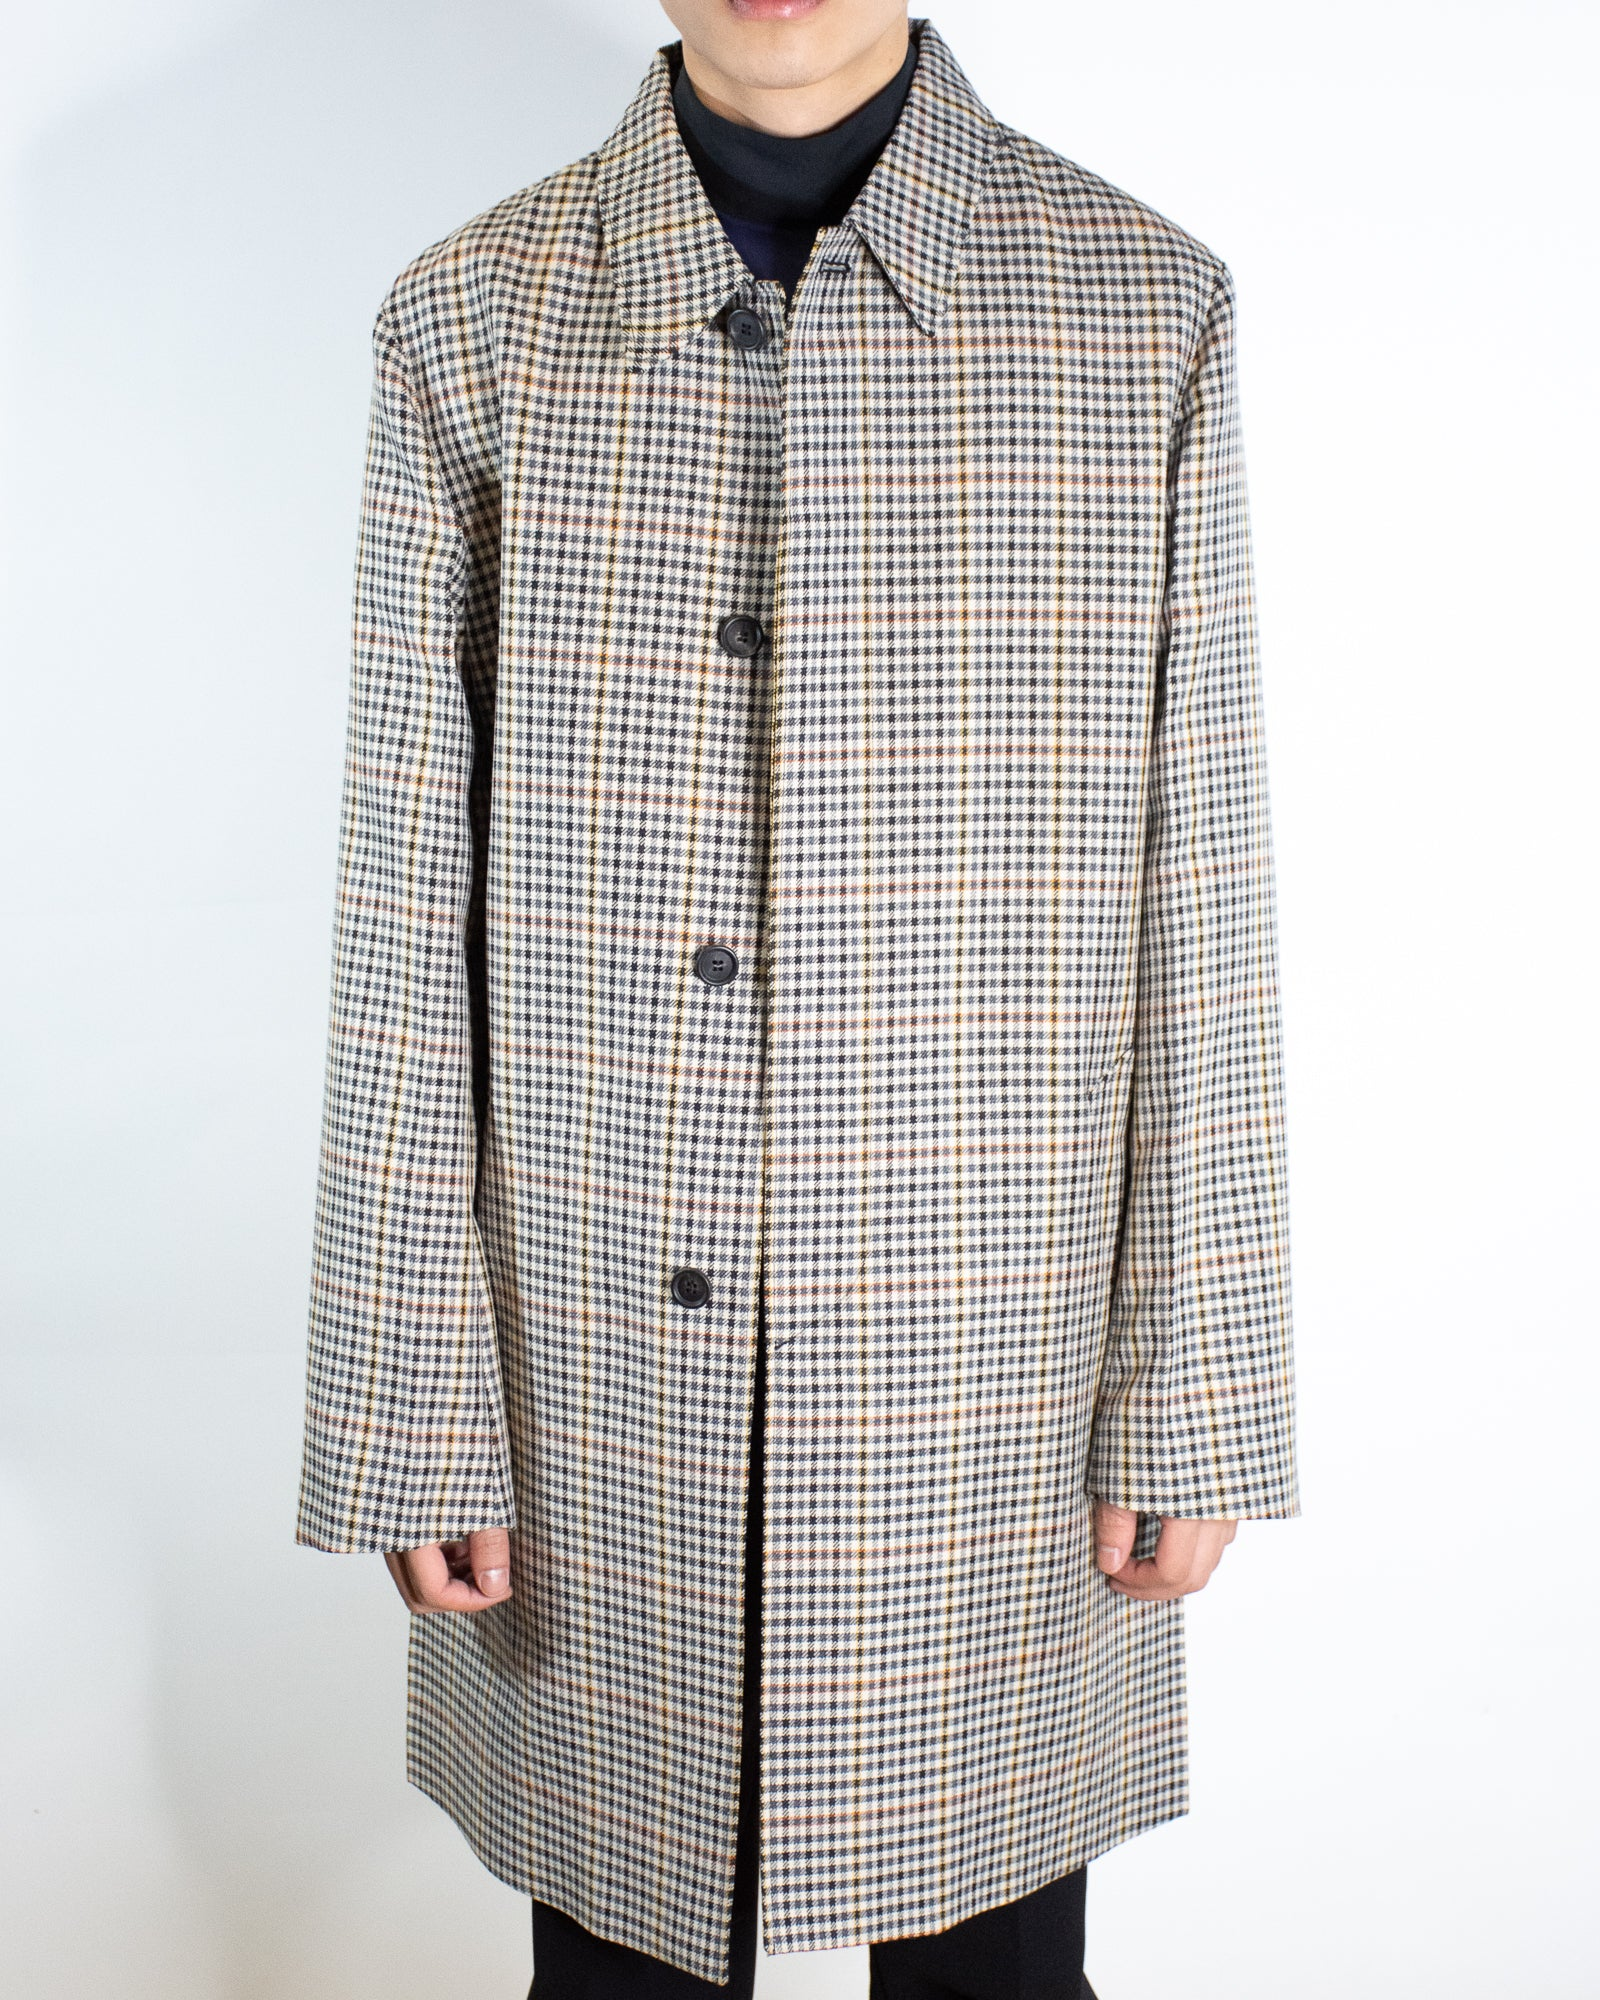 PRADA GINGHAM TRENCH